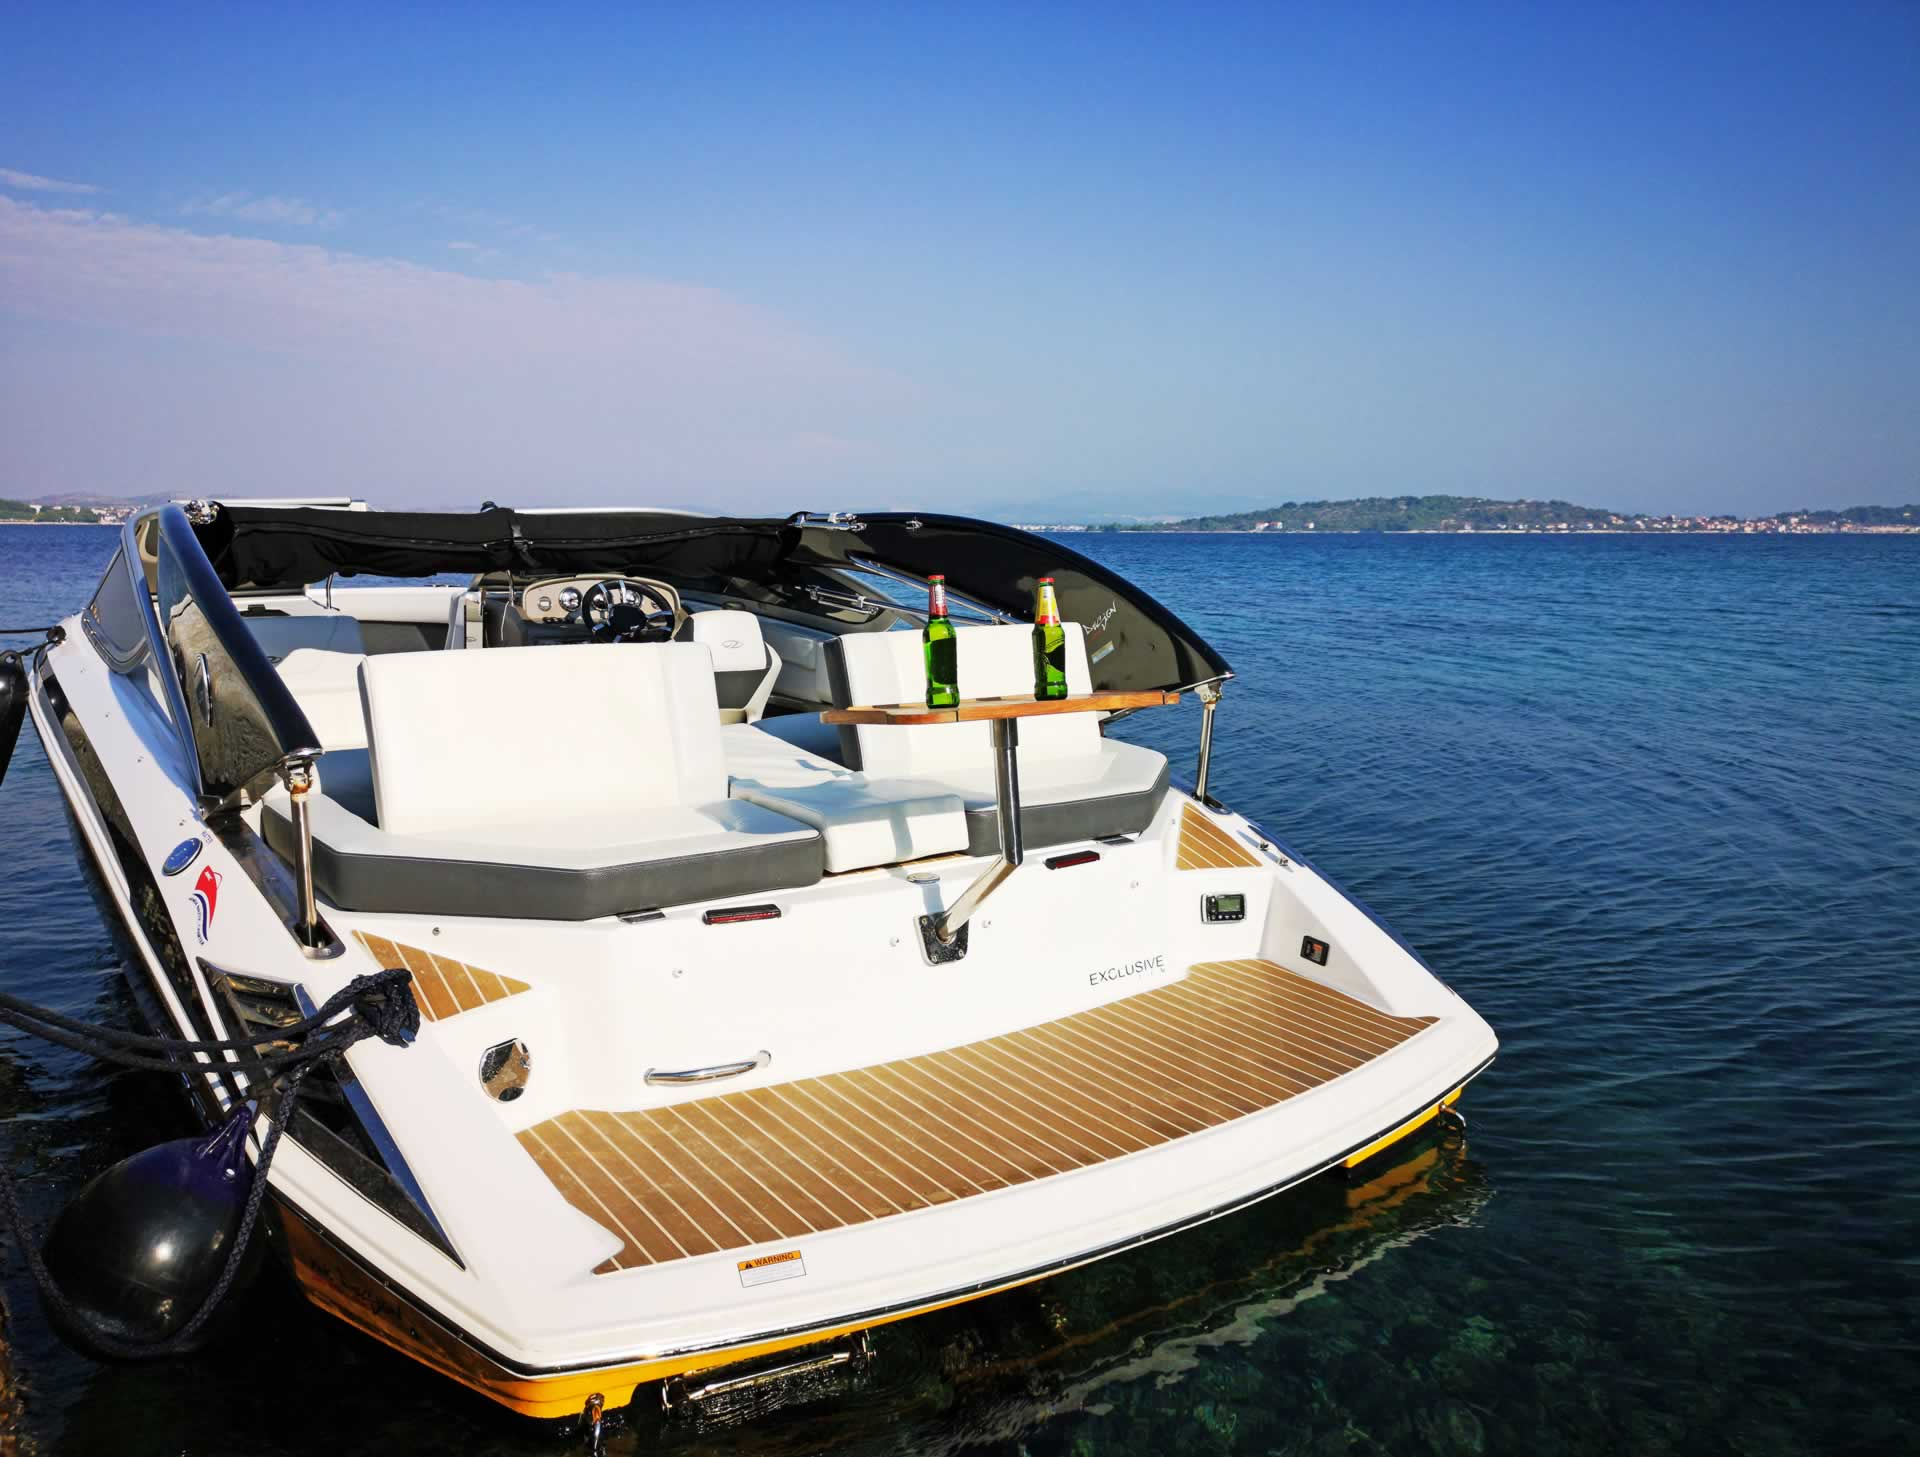 Motorboot mieten Regal 2100 RX - KRISTIJAN ANTIC - Individually Charter